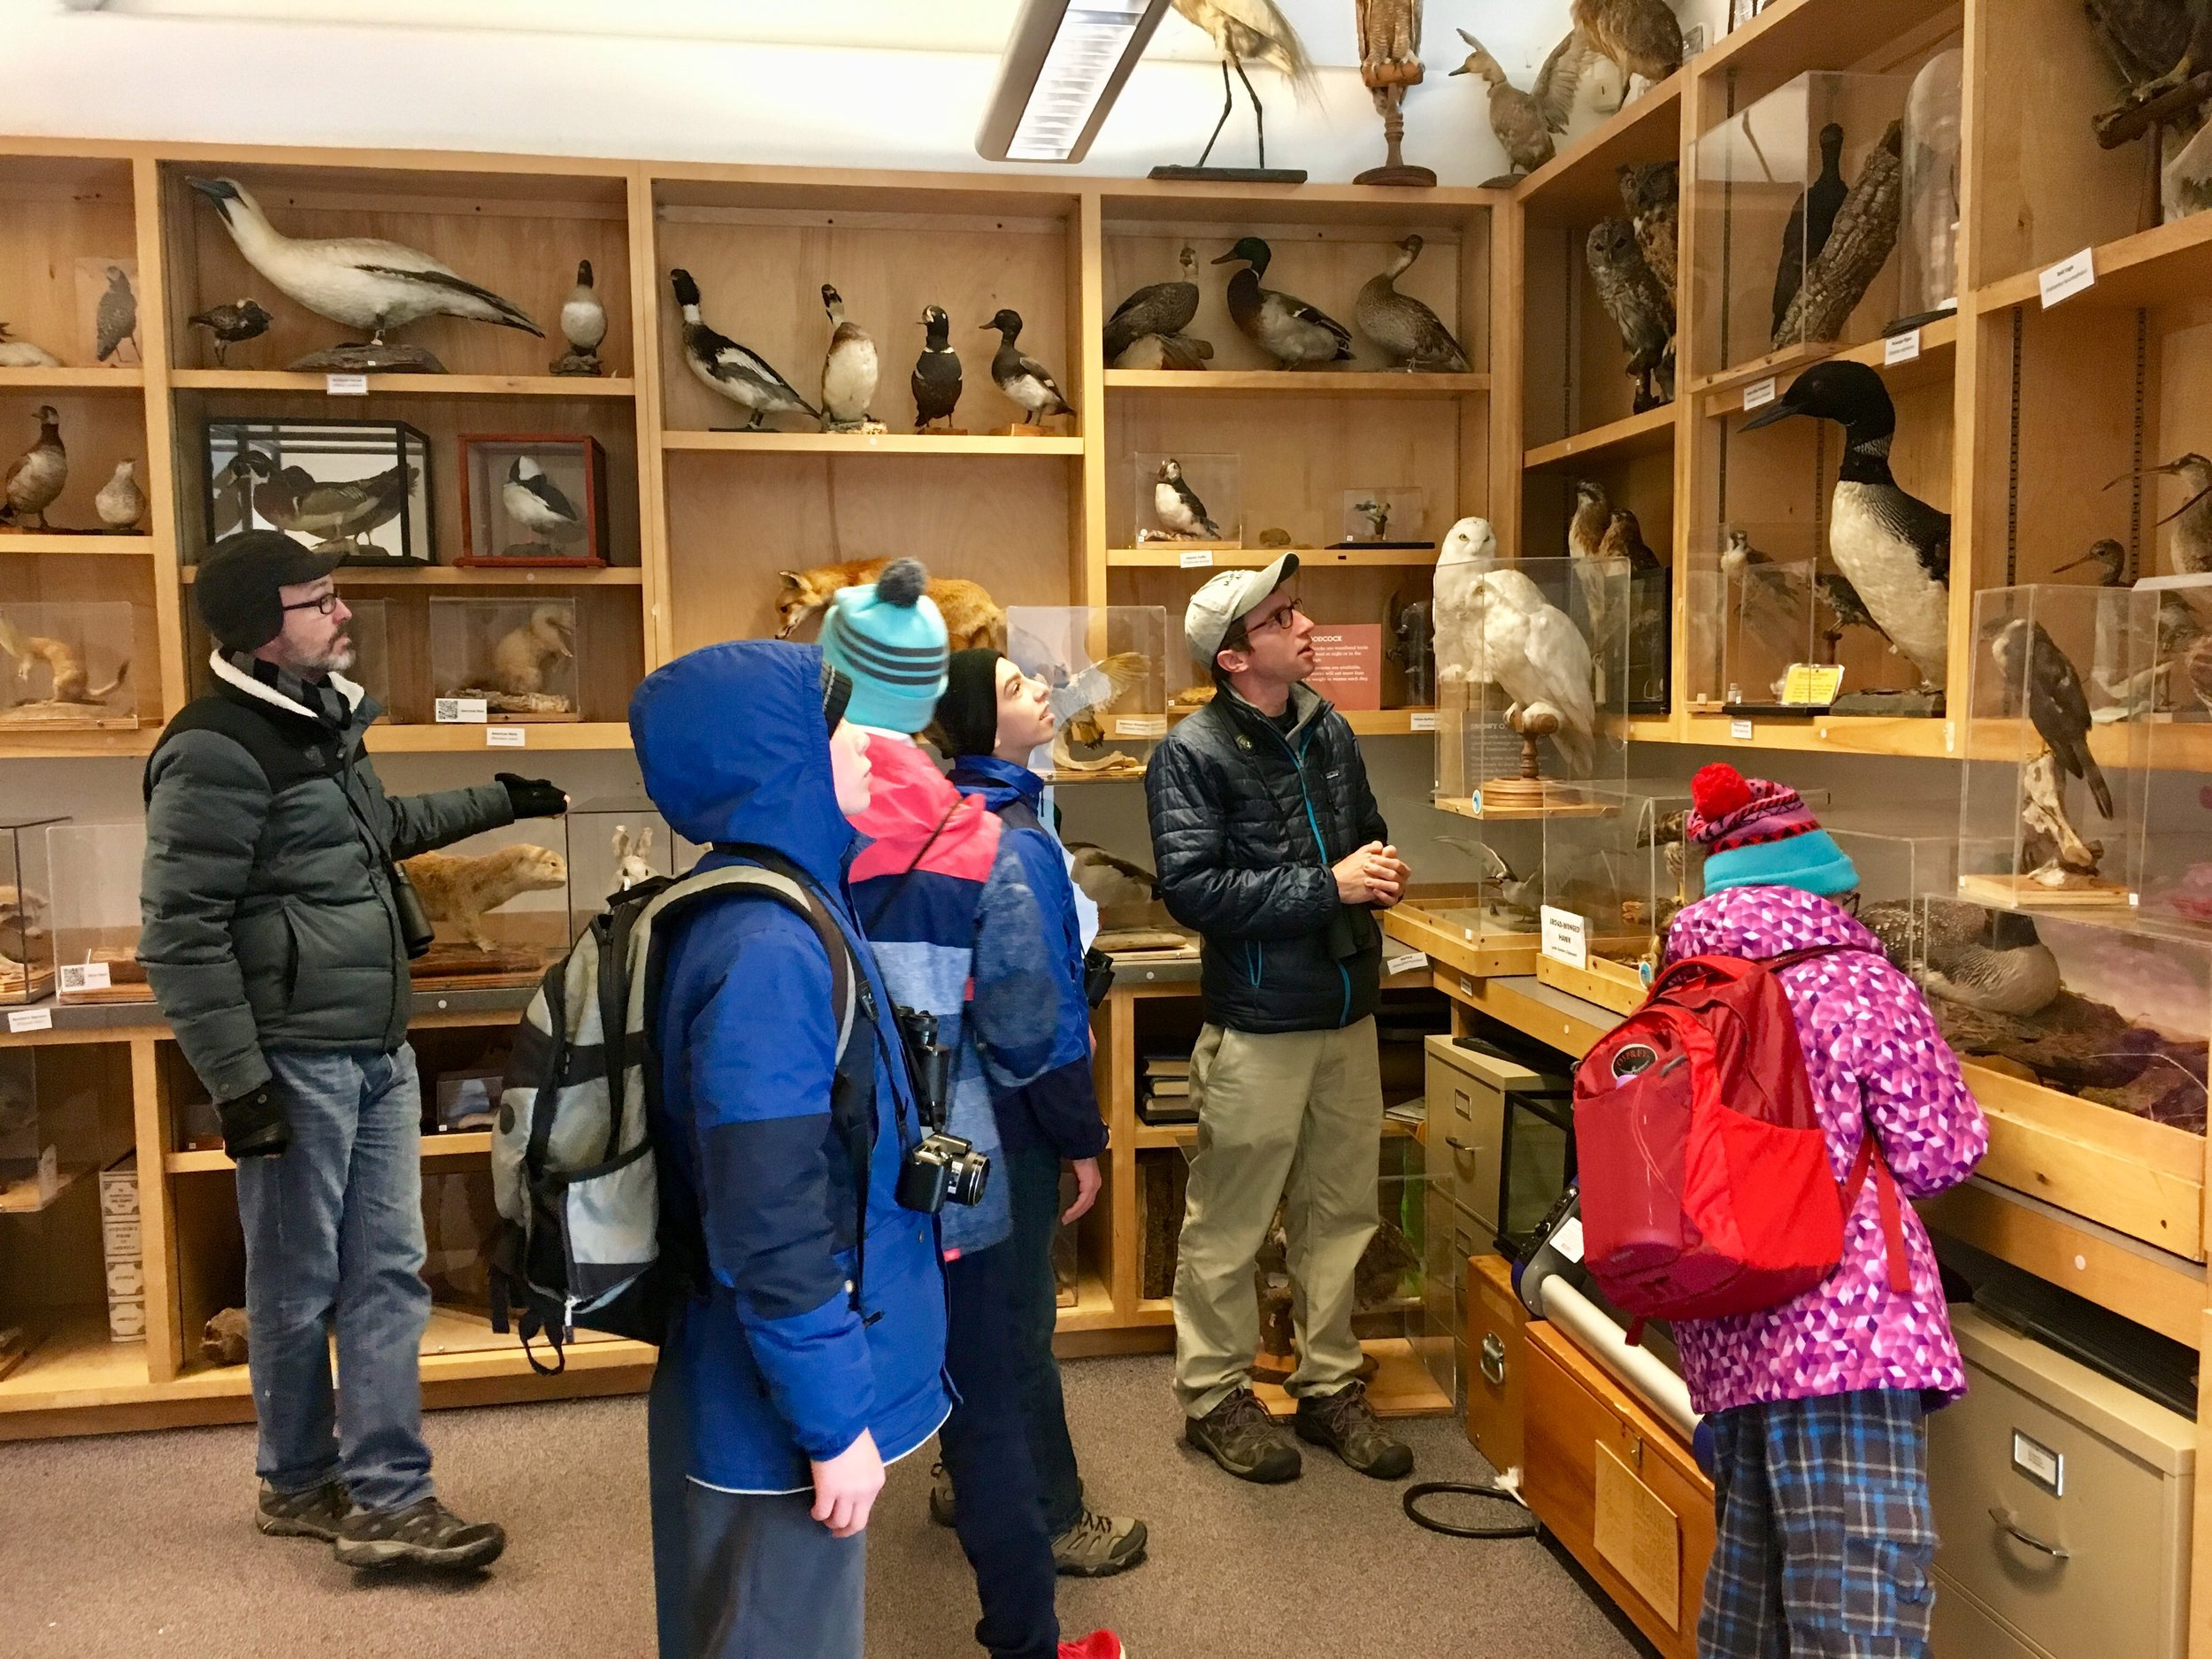 Admiring taxidermy mounts.  At the pond.  Photo by Lena Moser